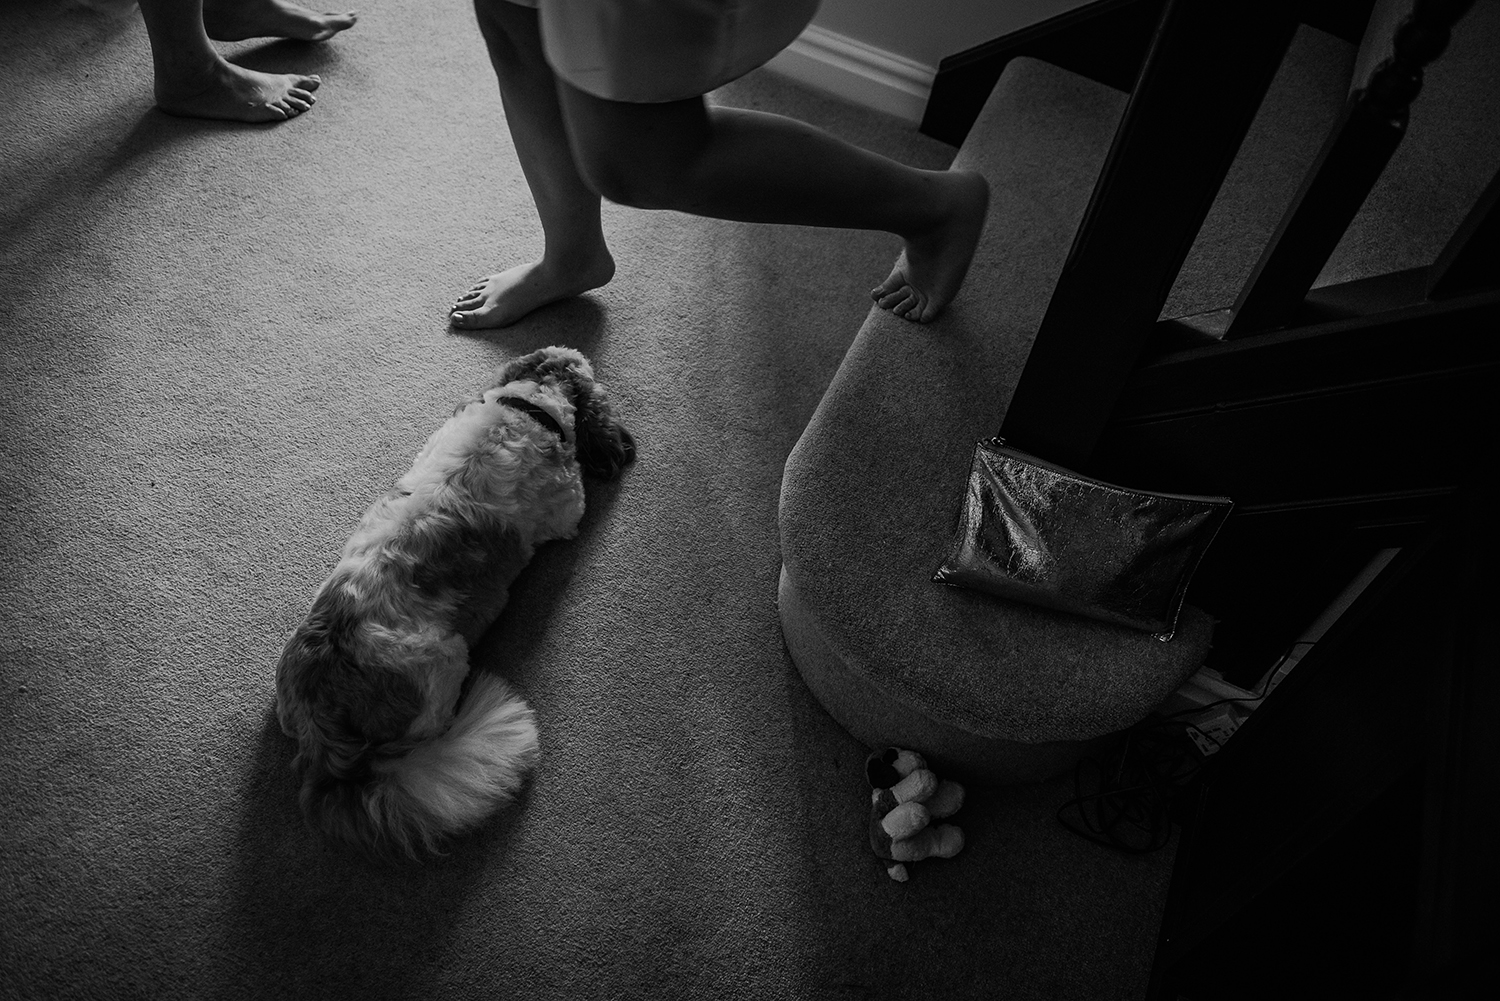 BW photo of people walking around a sleeping dog at the bottom of the stairs